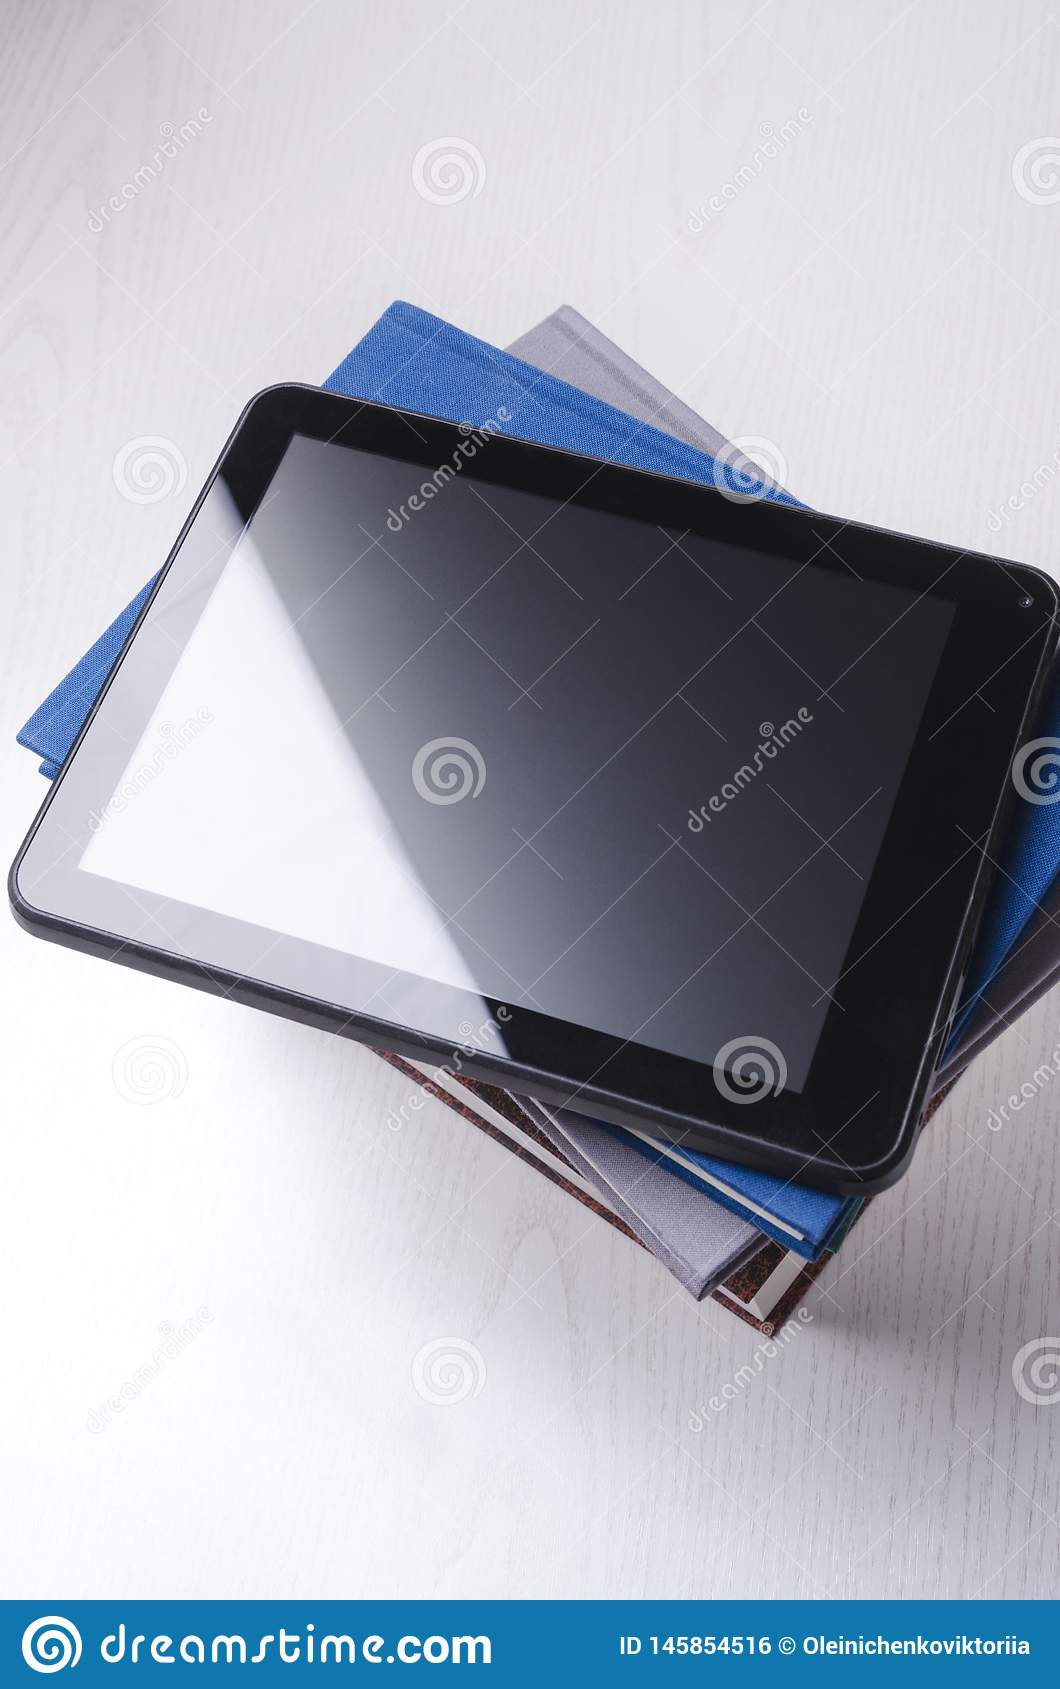 Tablet on top of books.Concept of e-learning, distance training and reading online